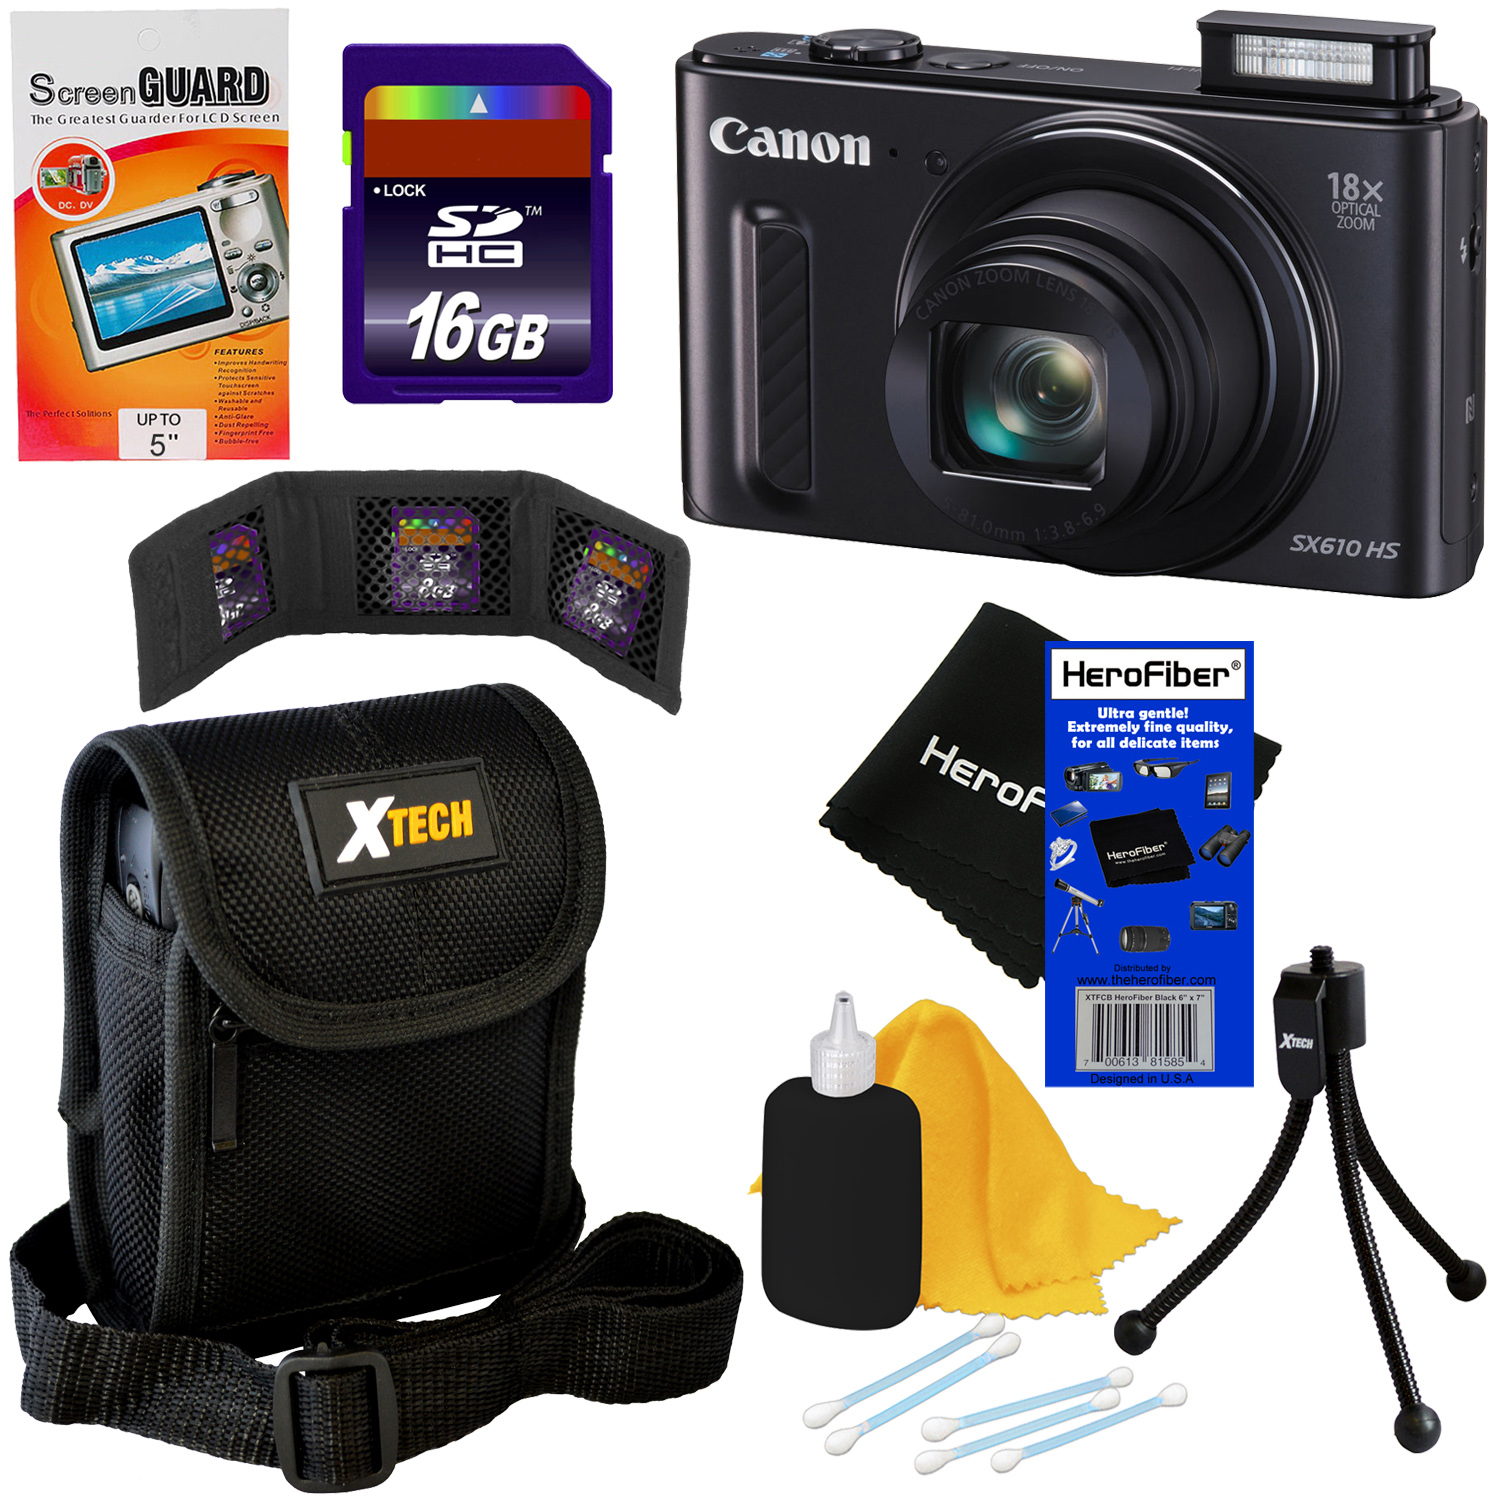 Canon PowerShot SX610 HS 20.2 MP Wi-Fi Digital Camera wit...